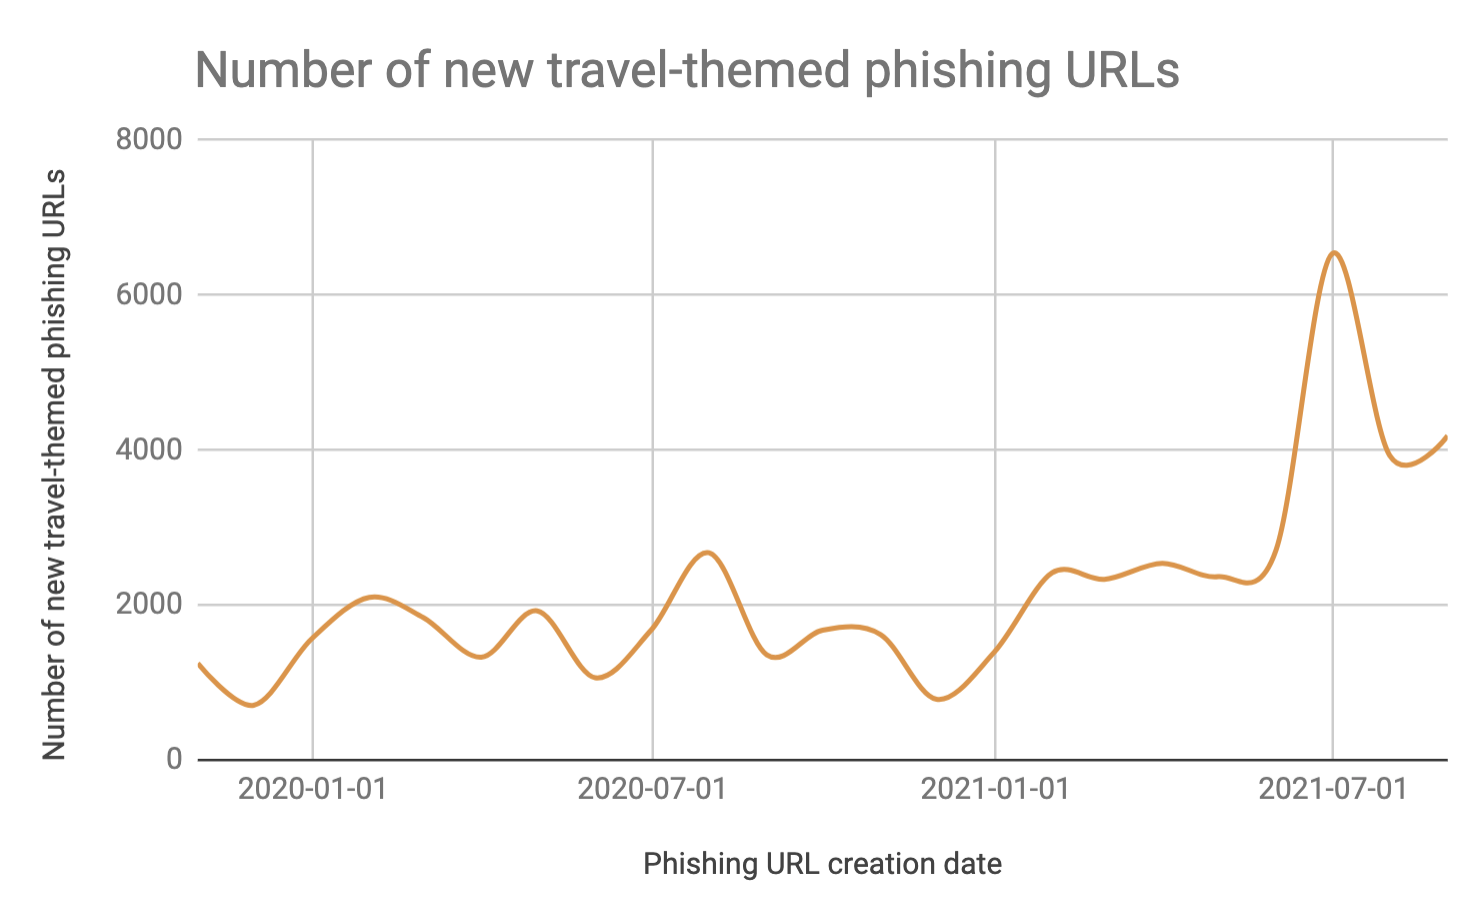 New travel-themed phishing URLs, shown in terms of the phishing URL creation date. Note the steep rise beginning in May 2021.